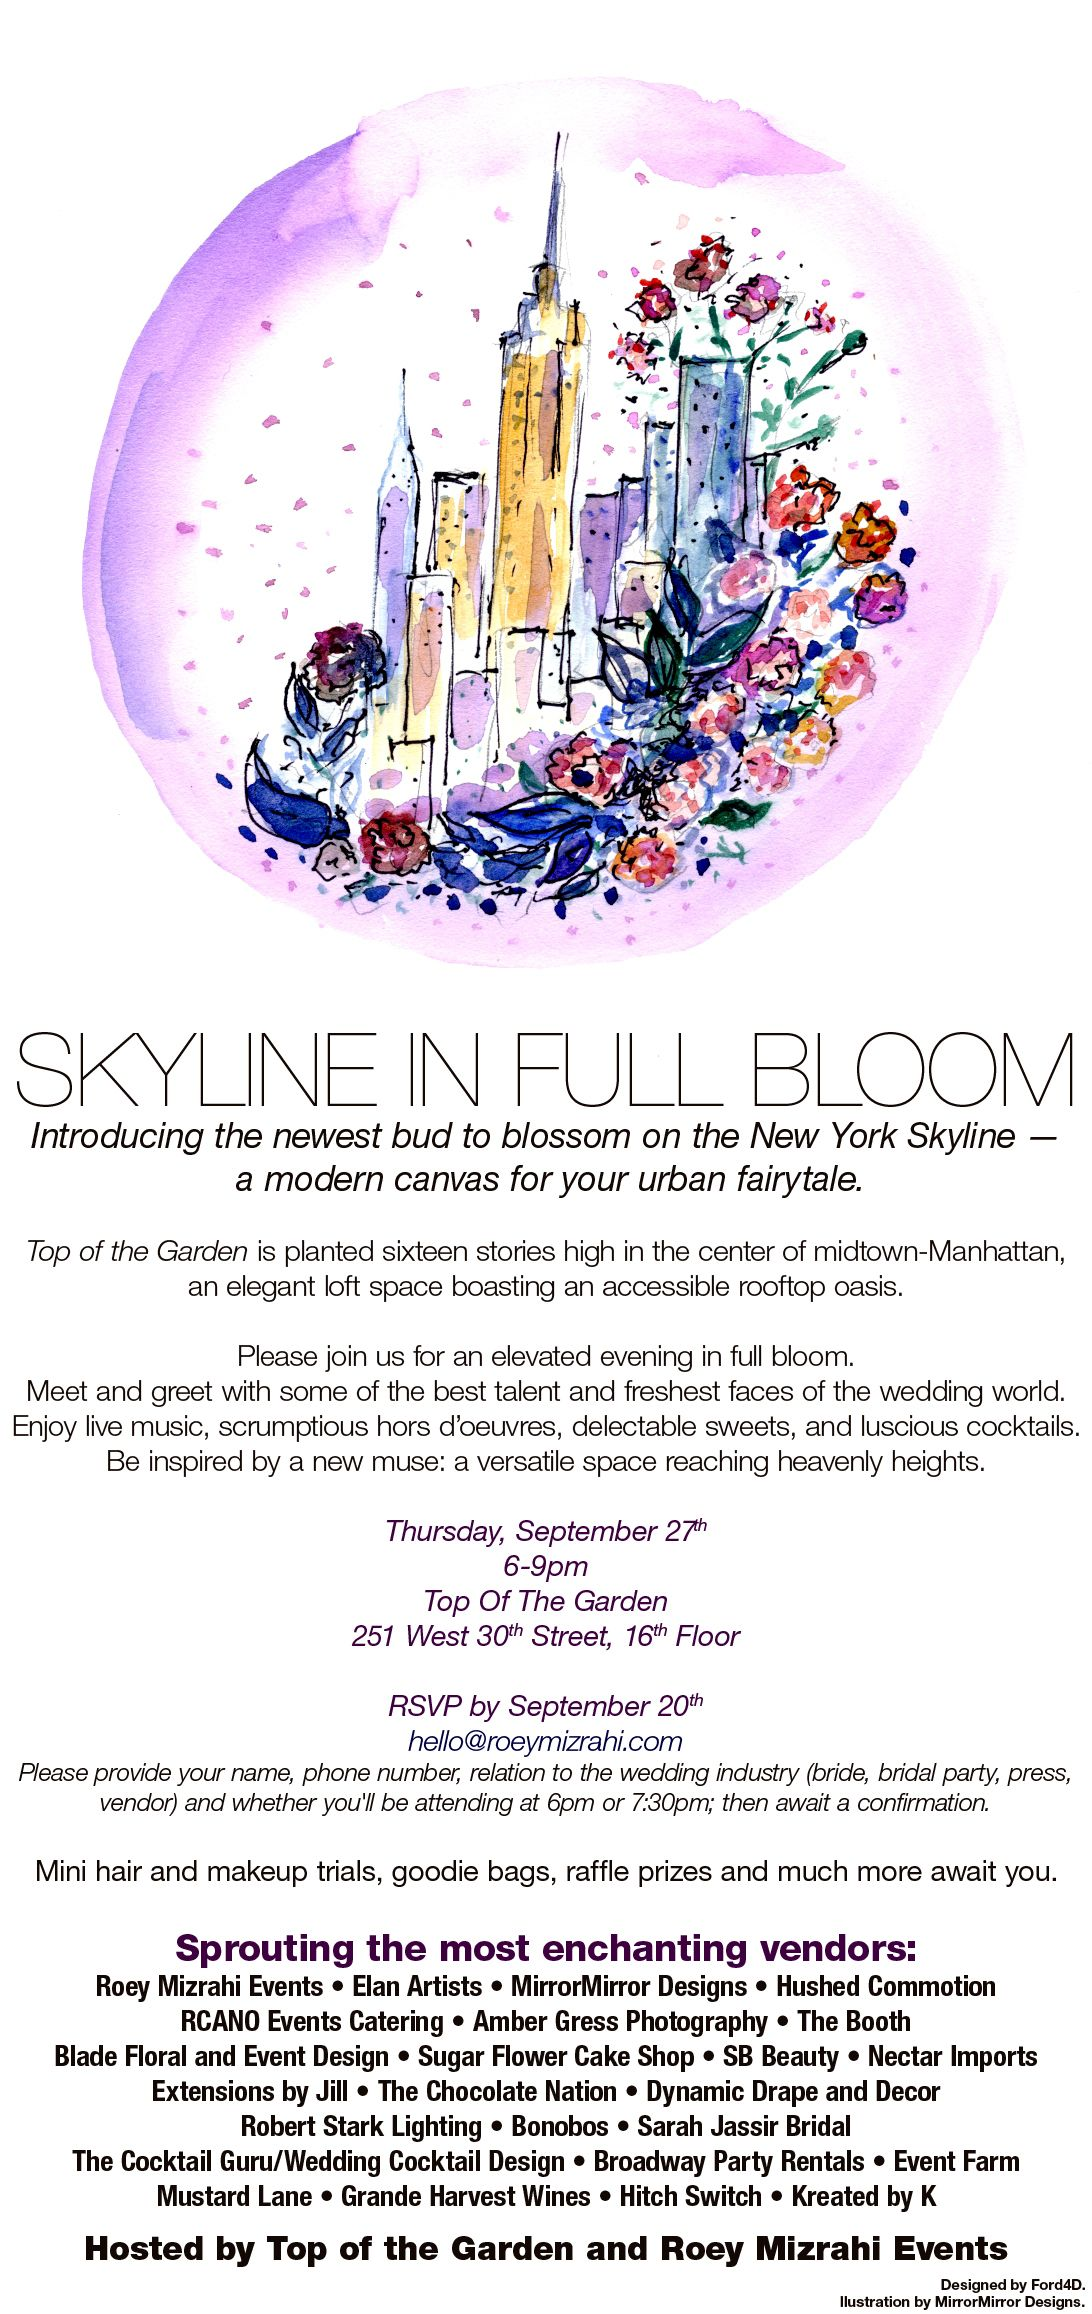 SKYLINE IN FULL BLOOM BRIDAL SHOWCASE EVENT 9/27! SPREAD THE WORD, SEND AN RSVP AND COME SPEND AN EVENING AMONGST GREAT TALENT. BRIDES, GROOMS, VENDORS, AND EVEN IN-LAWS ALLOWED! SUMMER MIGHT BE OVER BUT THE PARTY HAS JUST BEGUN! RSVP @ HELLO@ROEYMIZRAHI.COM.